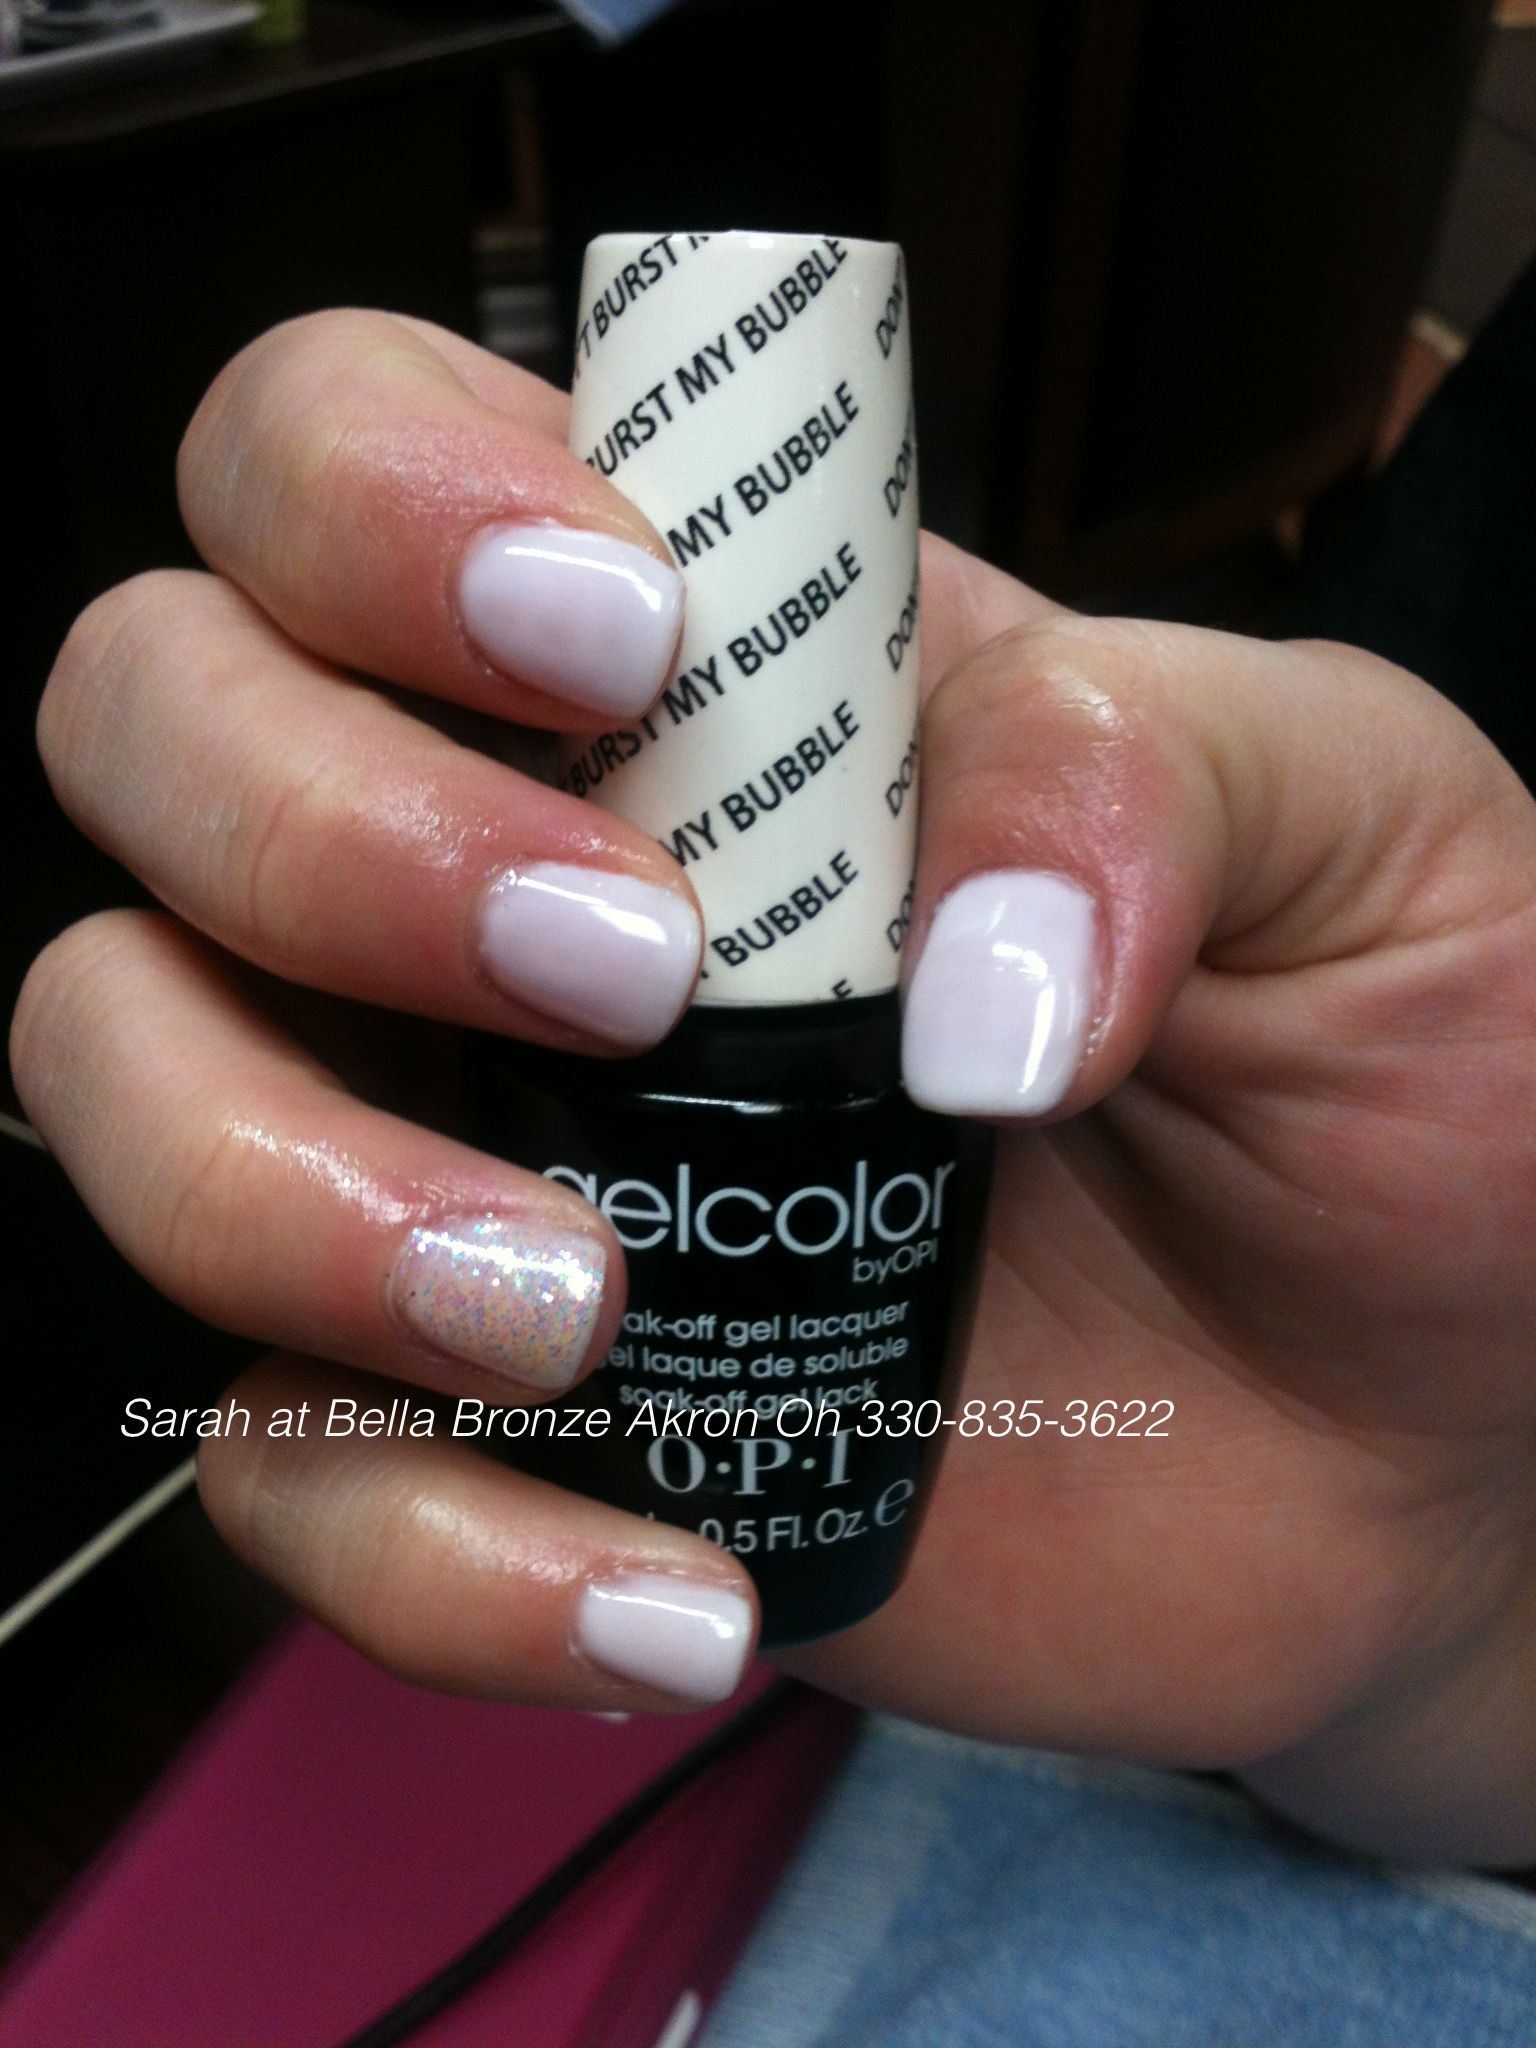 Opi Gelcolor Don T Burst My Bubble With Glitter Accent Nail Opi Gel Nail Colors Opi Gel Nails